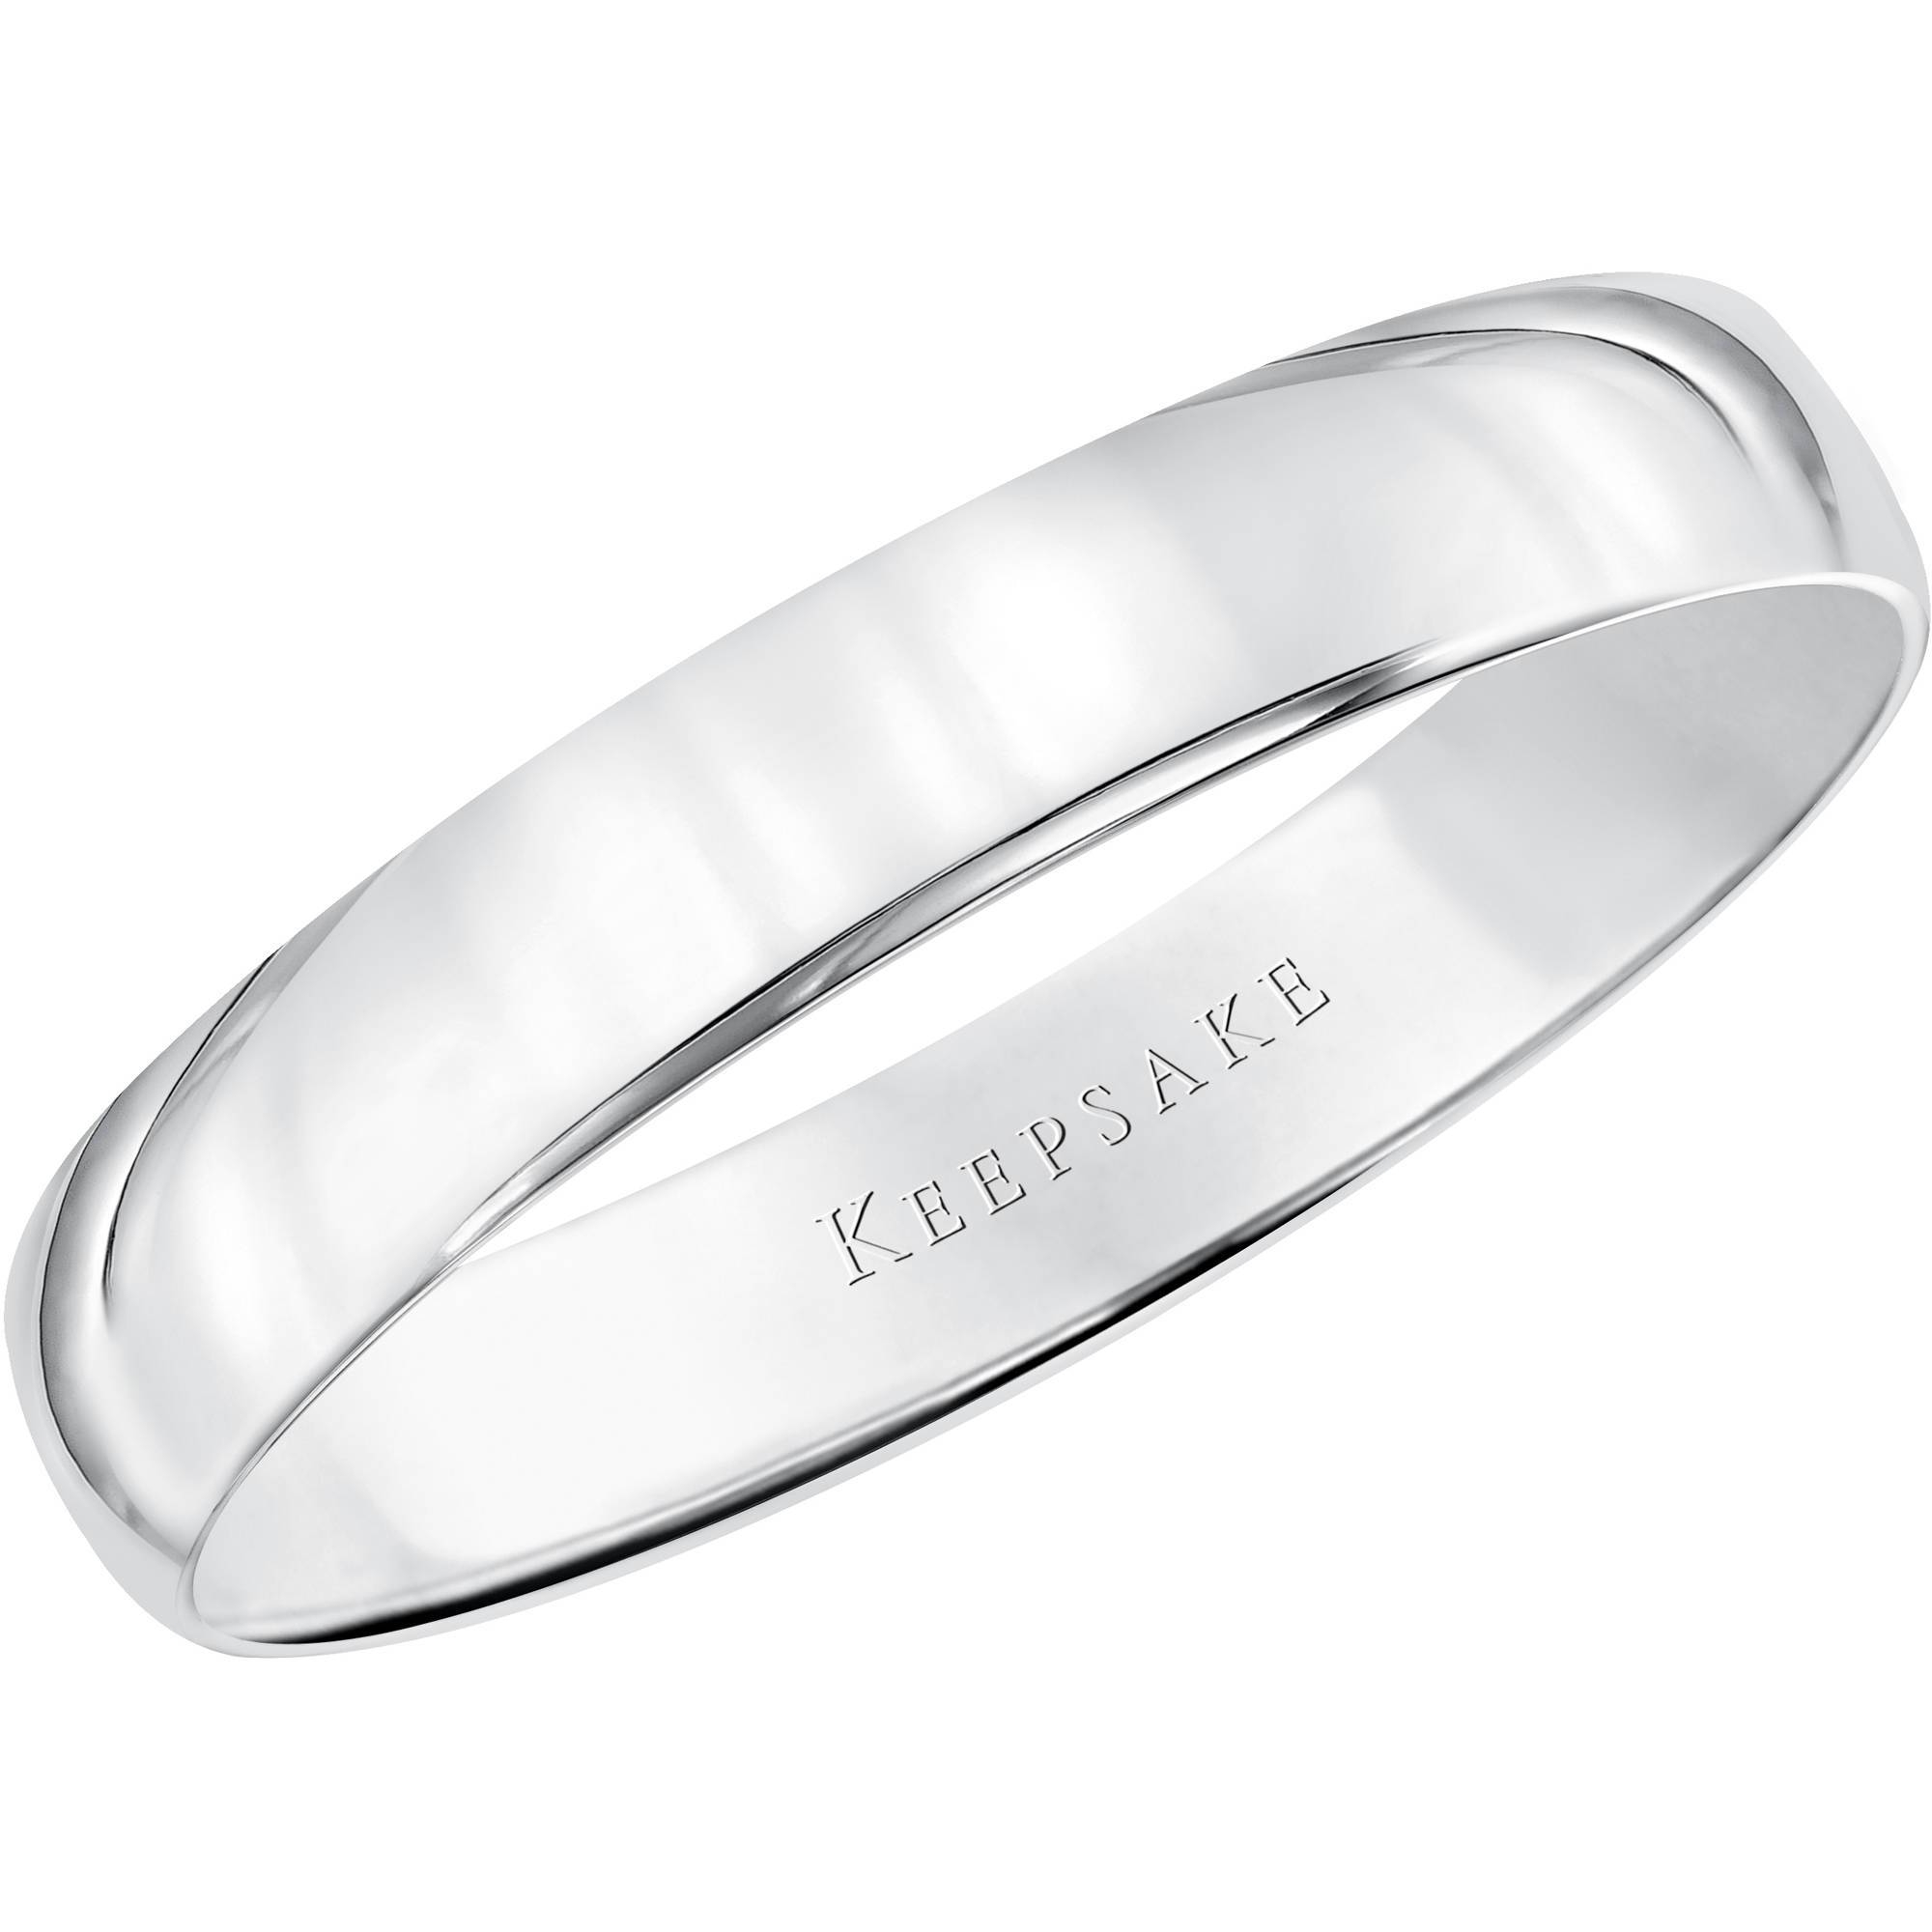 Keepsake 10Kt White Gold Wedding Band, 4Mm – Walmart With Regard To Most Up To Date 4Mm Comfort Fit Wedding Bands (View 8 of 15)